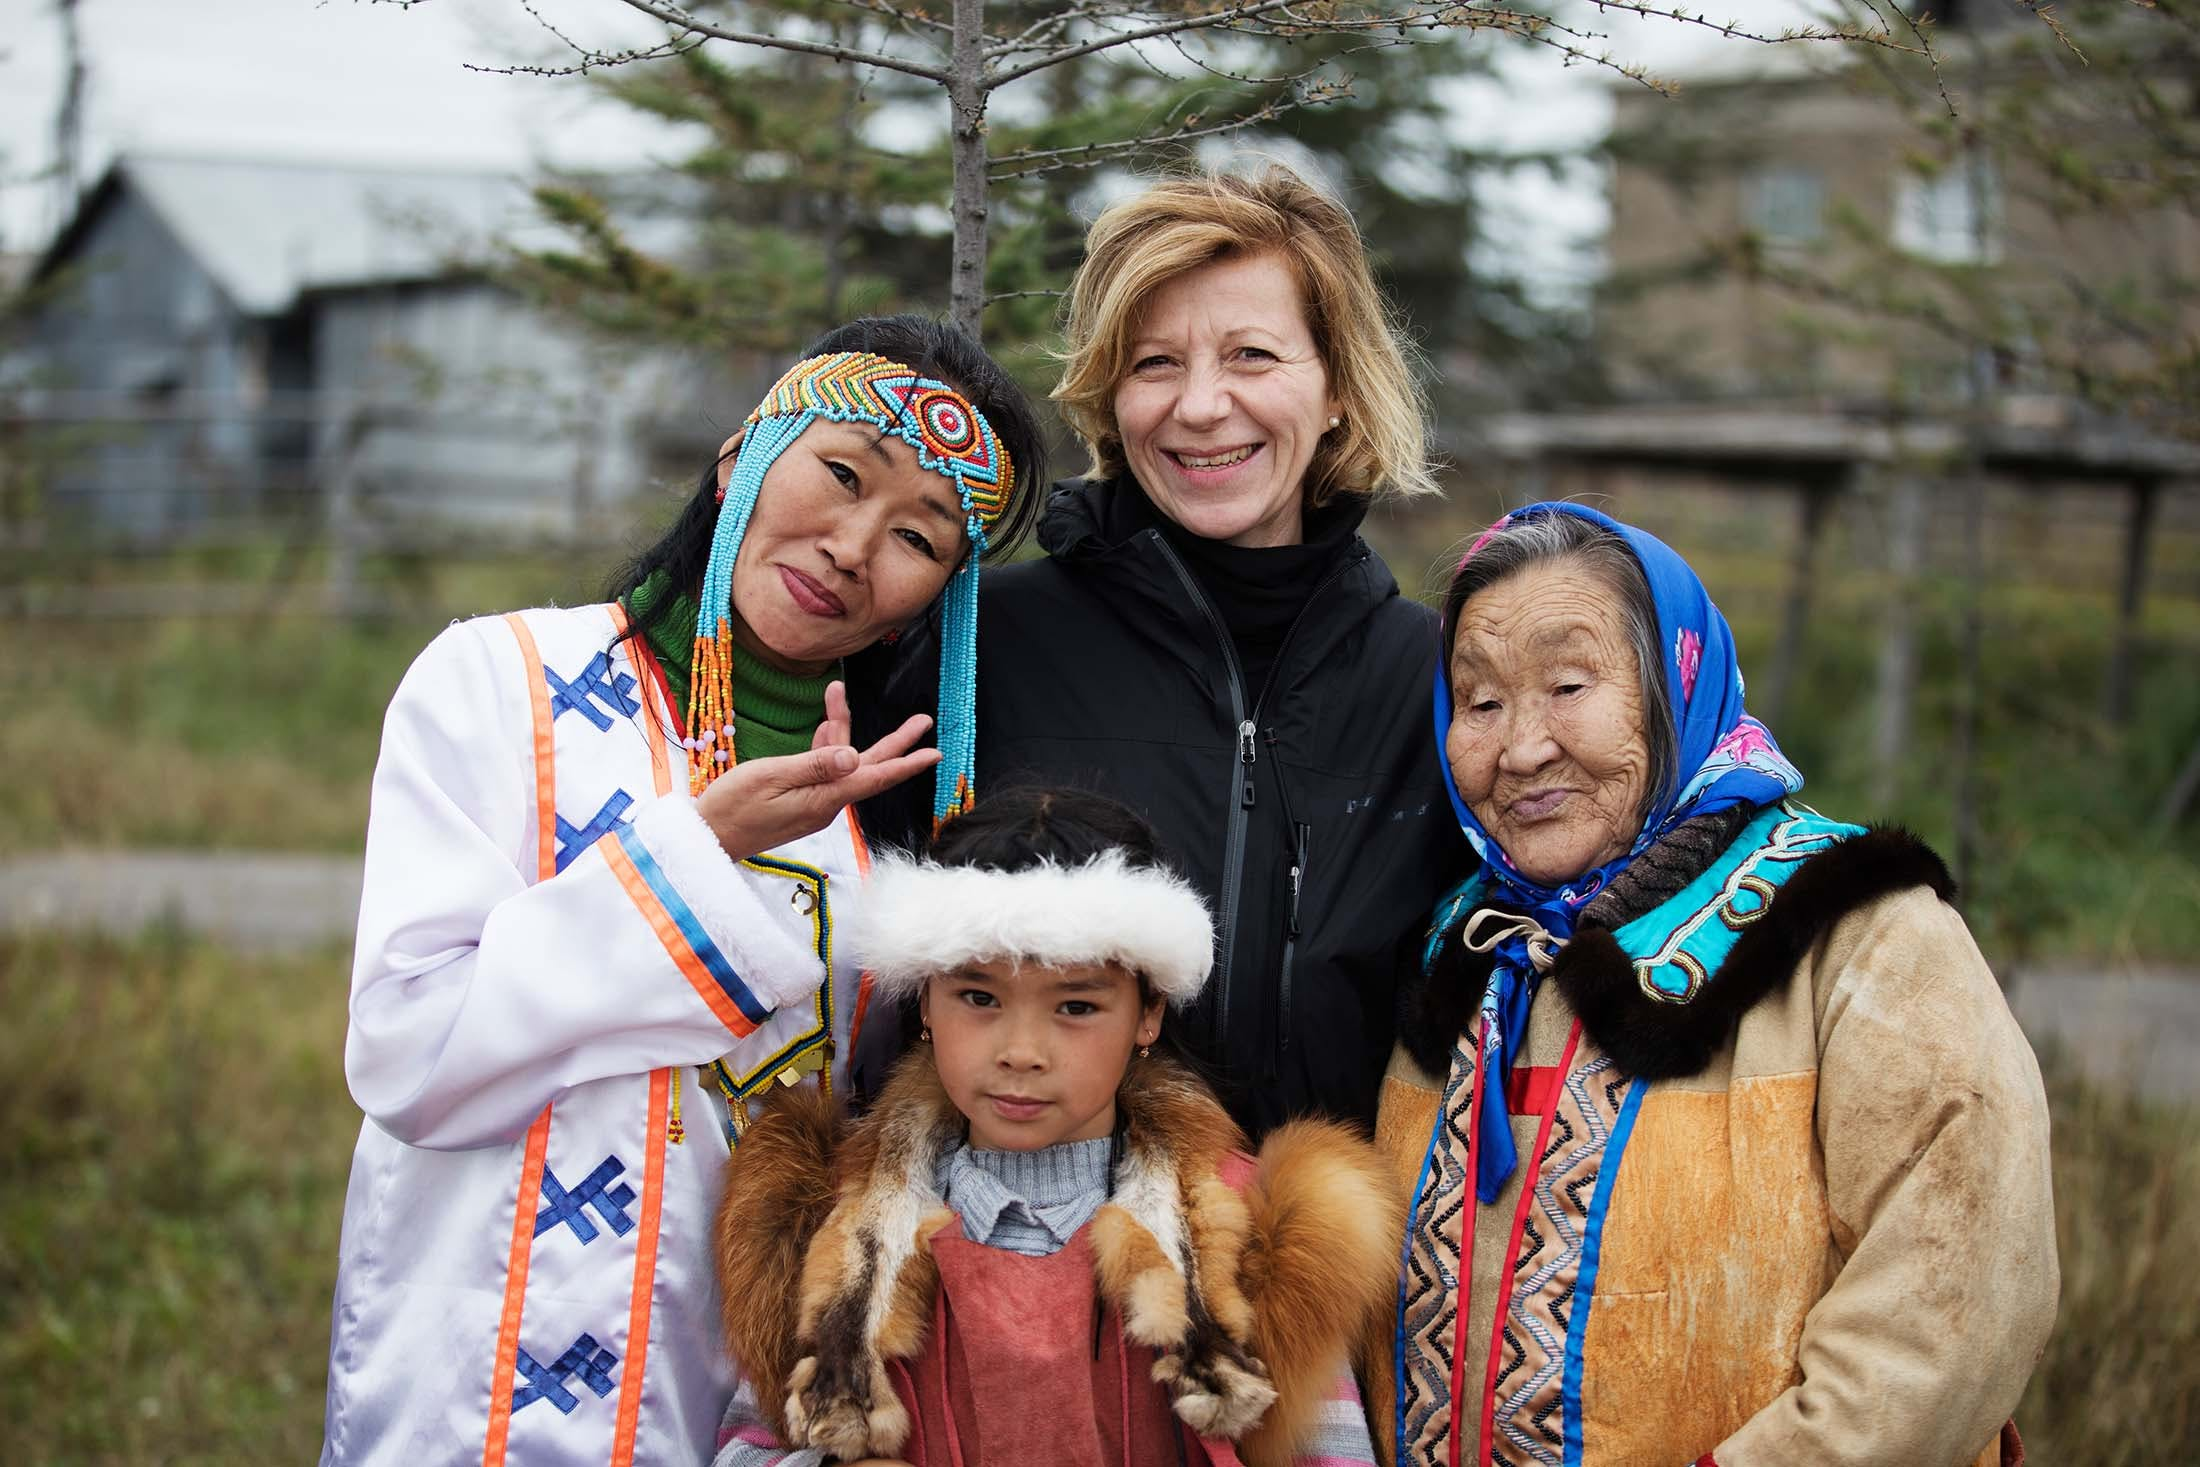 The Eveny people of Okhotsk City in Russia